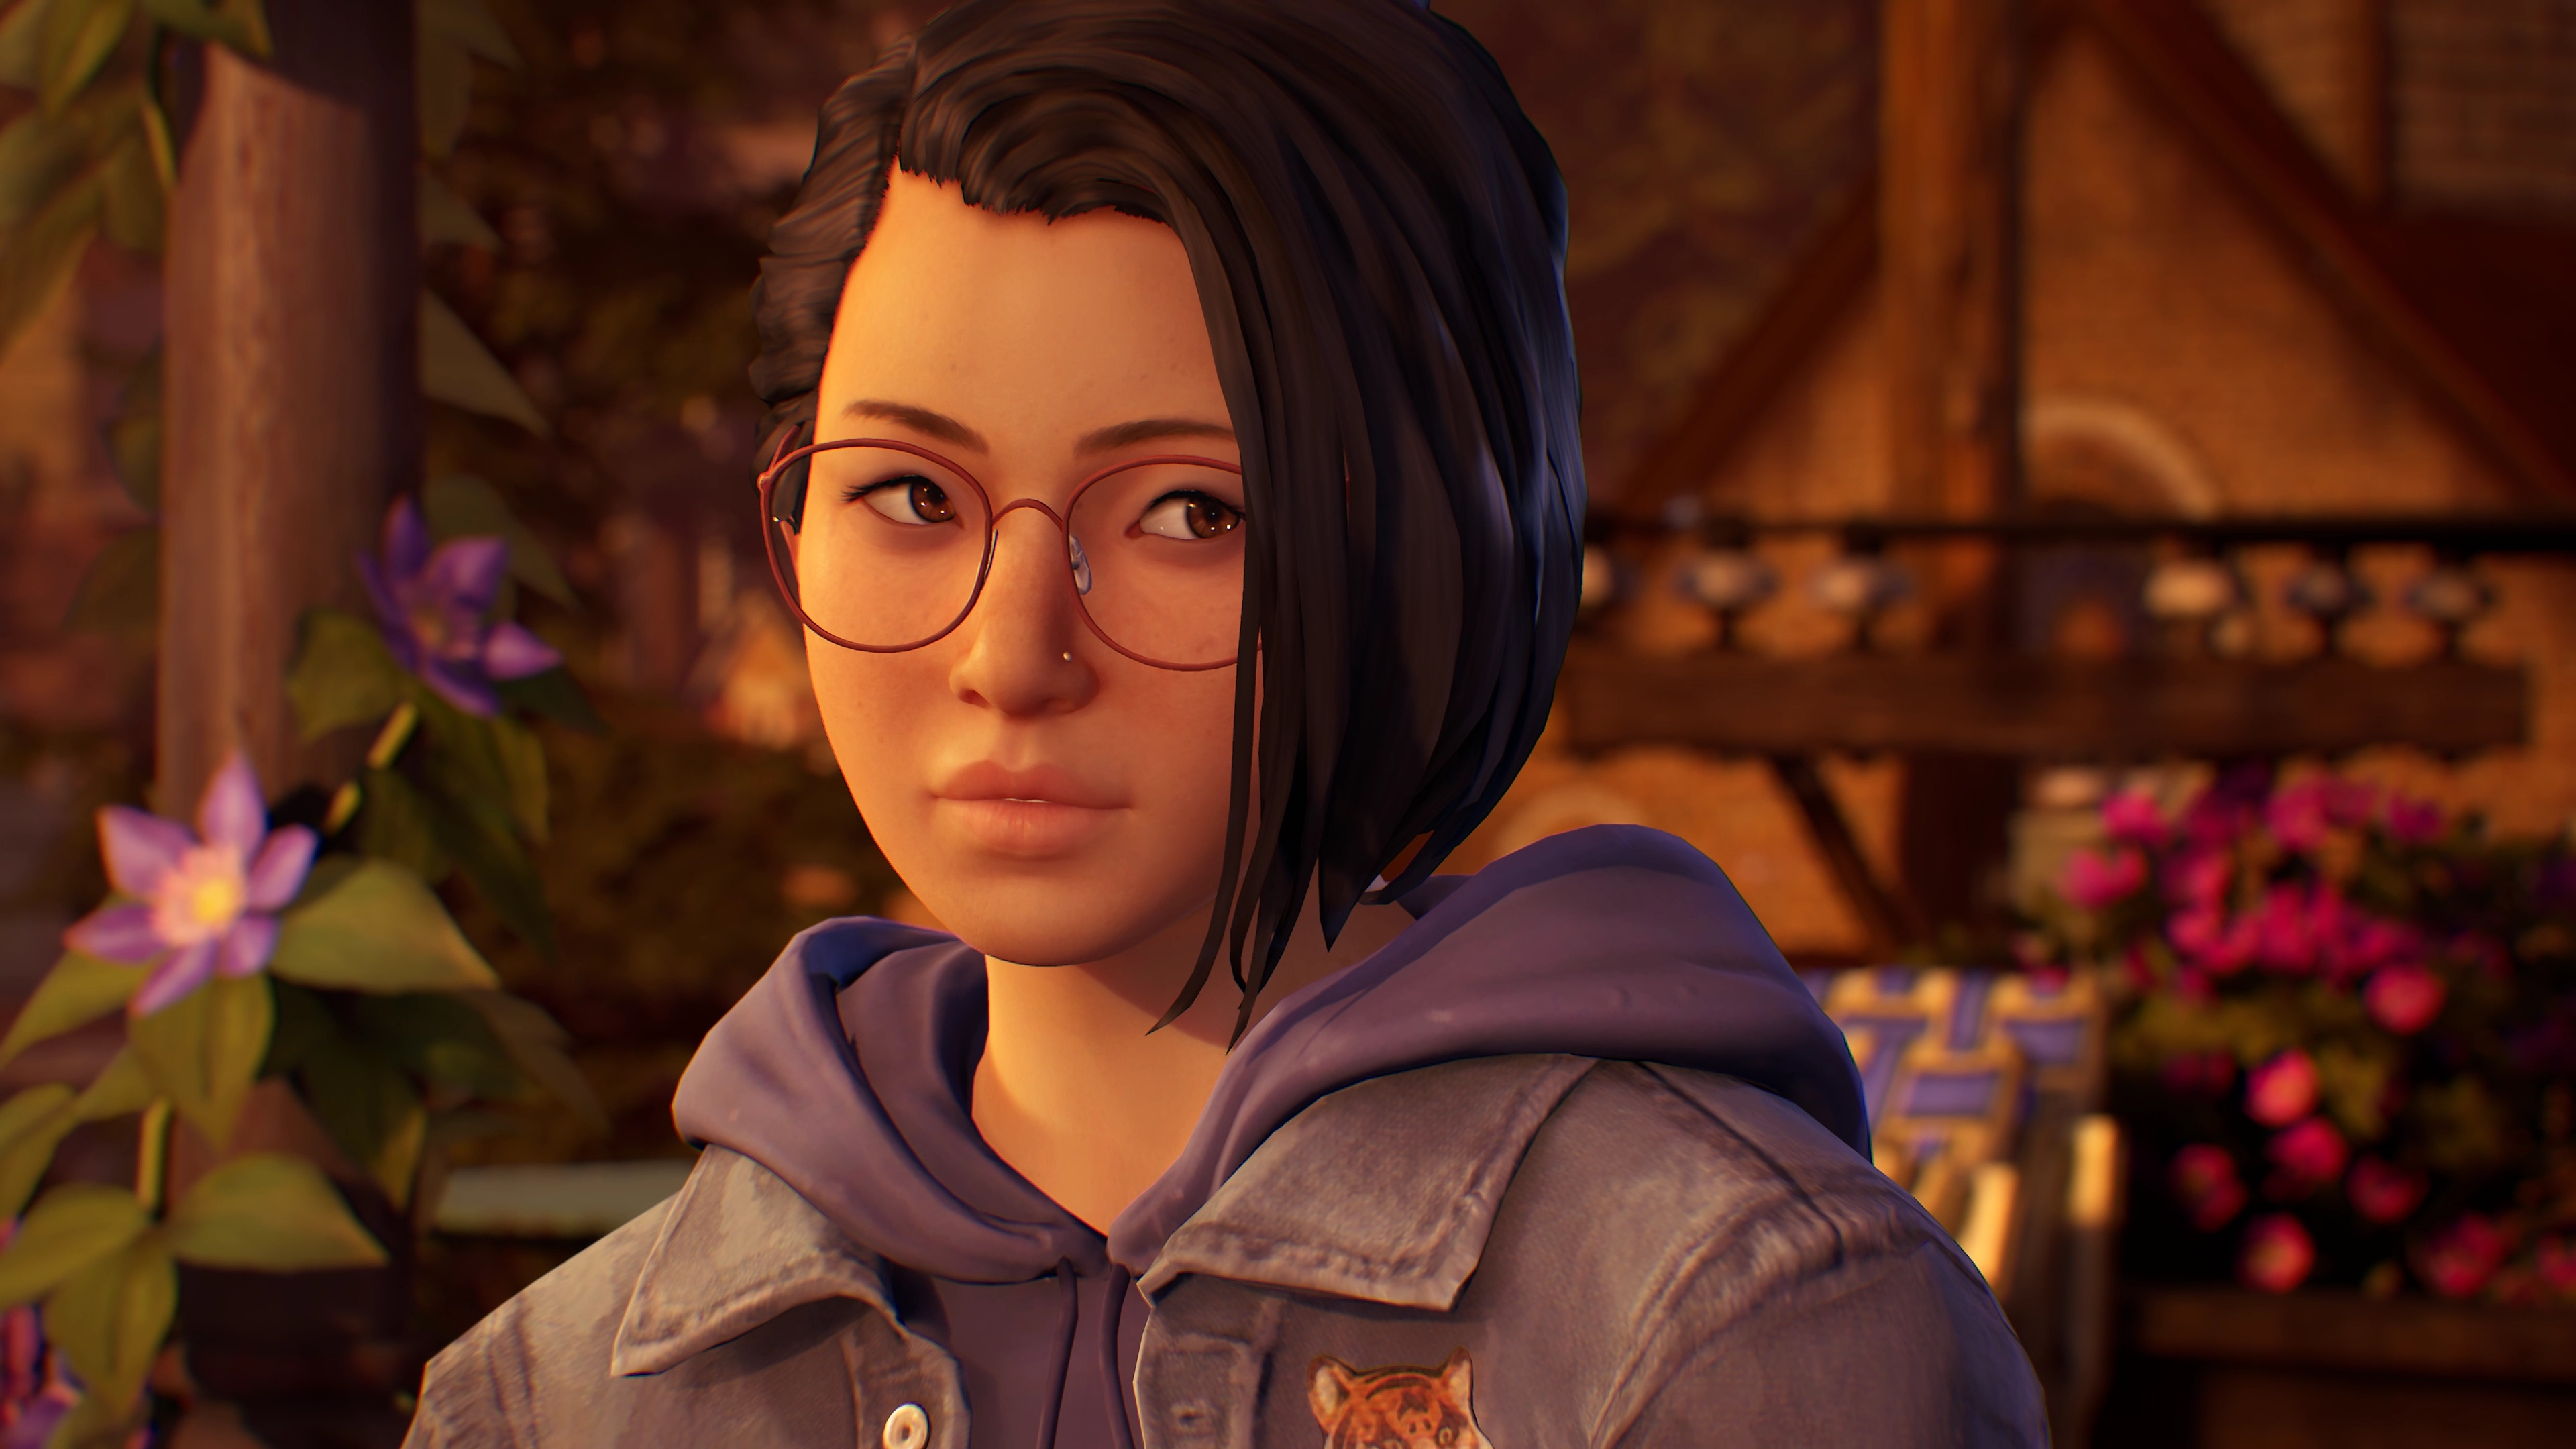 Life Is Strange True Colors screenshot showing the main character Alex Chen